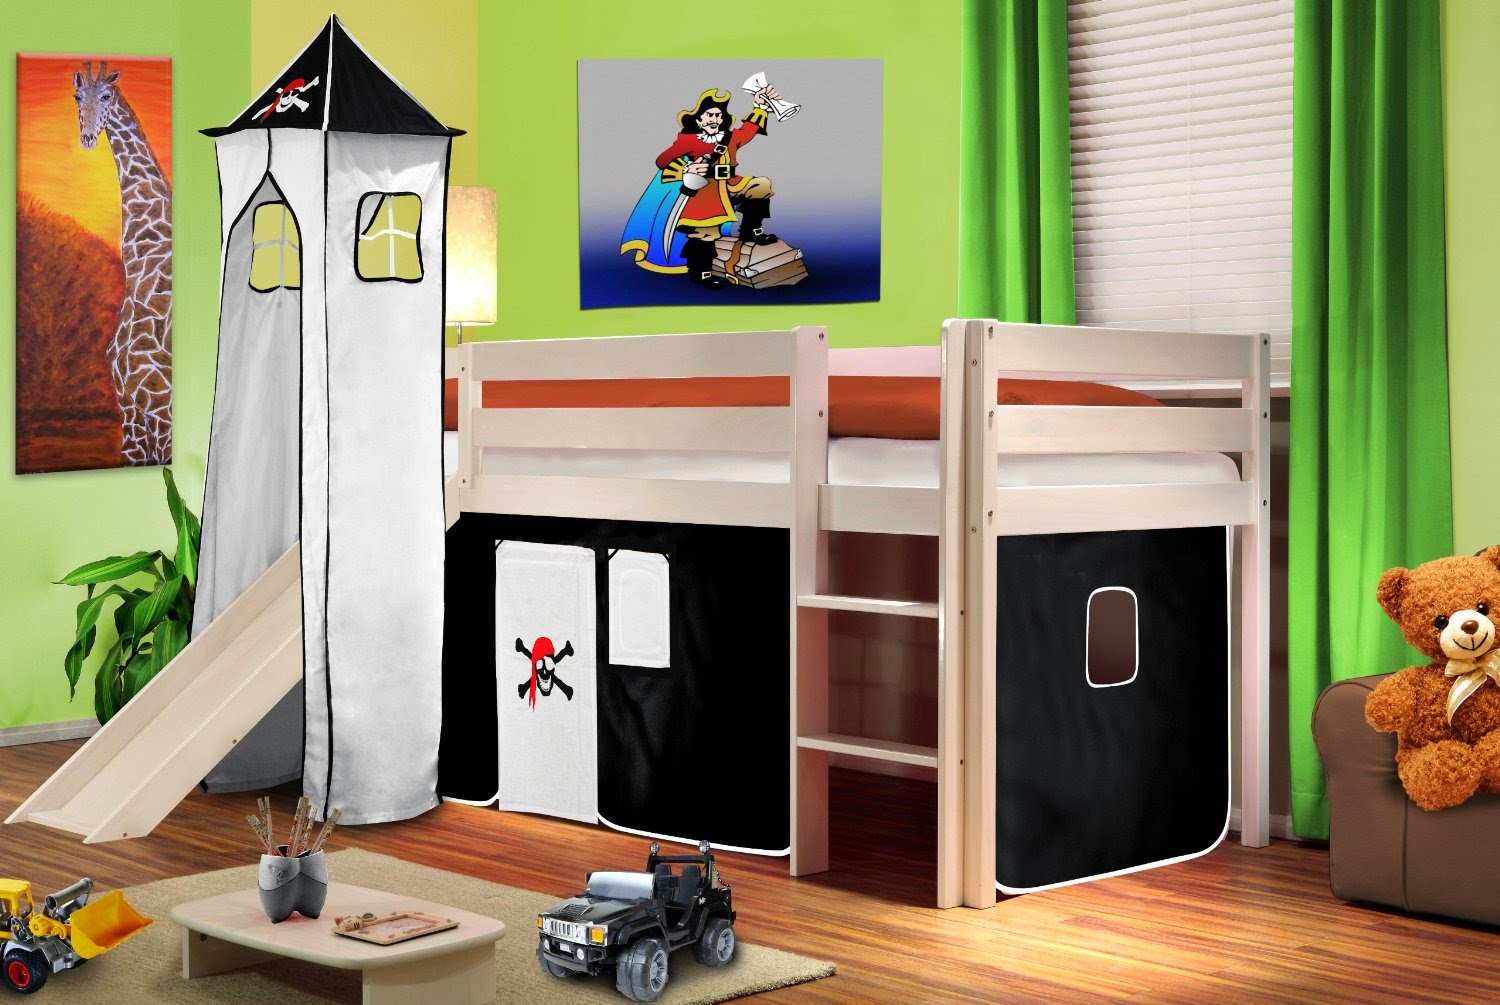 5 lits d 39 enfant originaux moins de 300 euros initiales. Black Bedroom Furniture Sets. Home Design Ideas